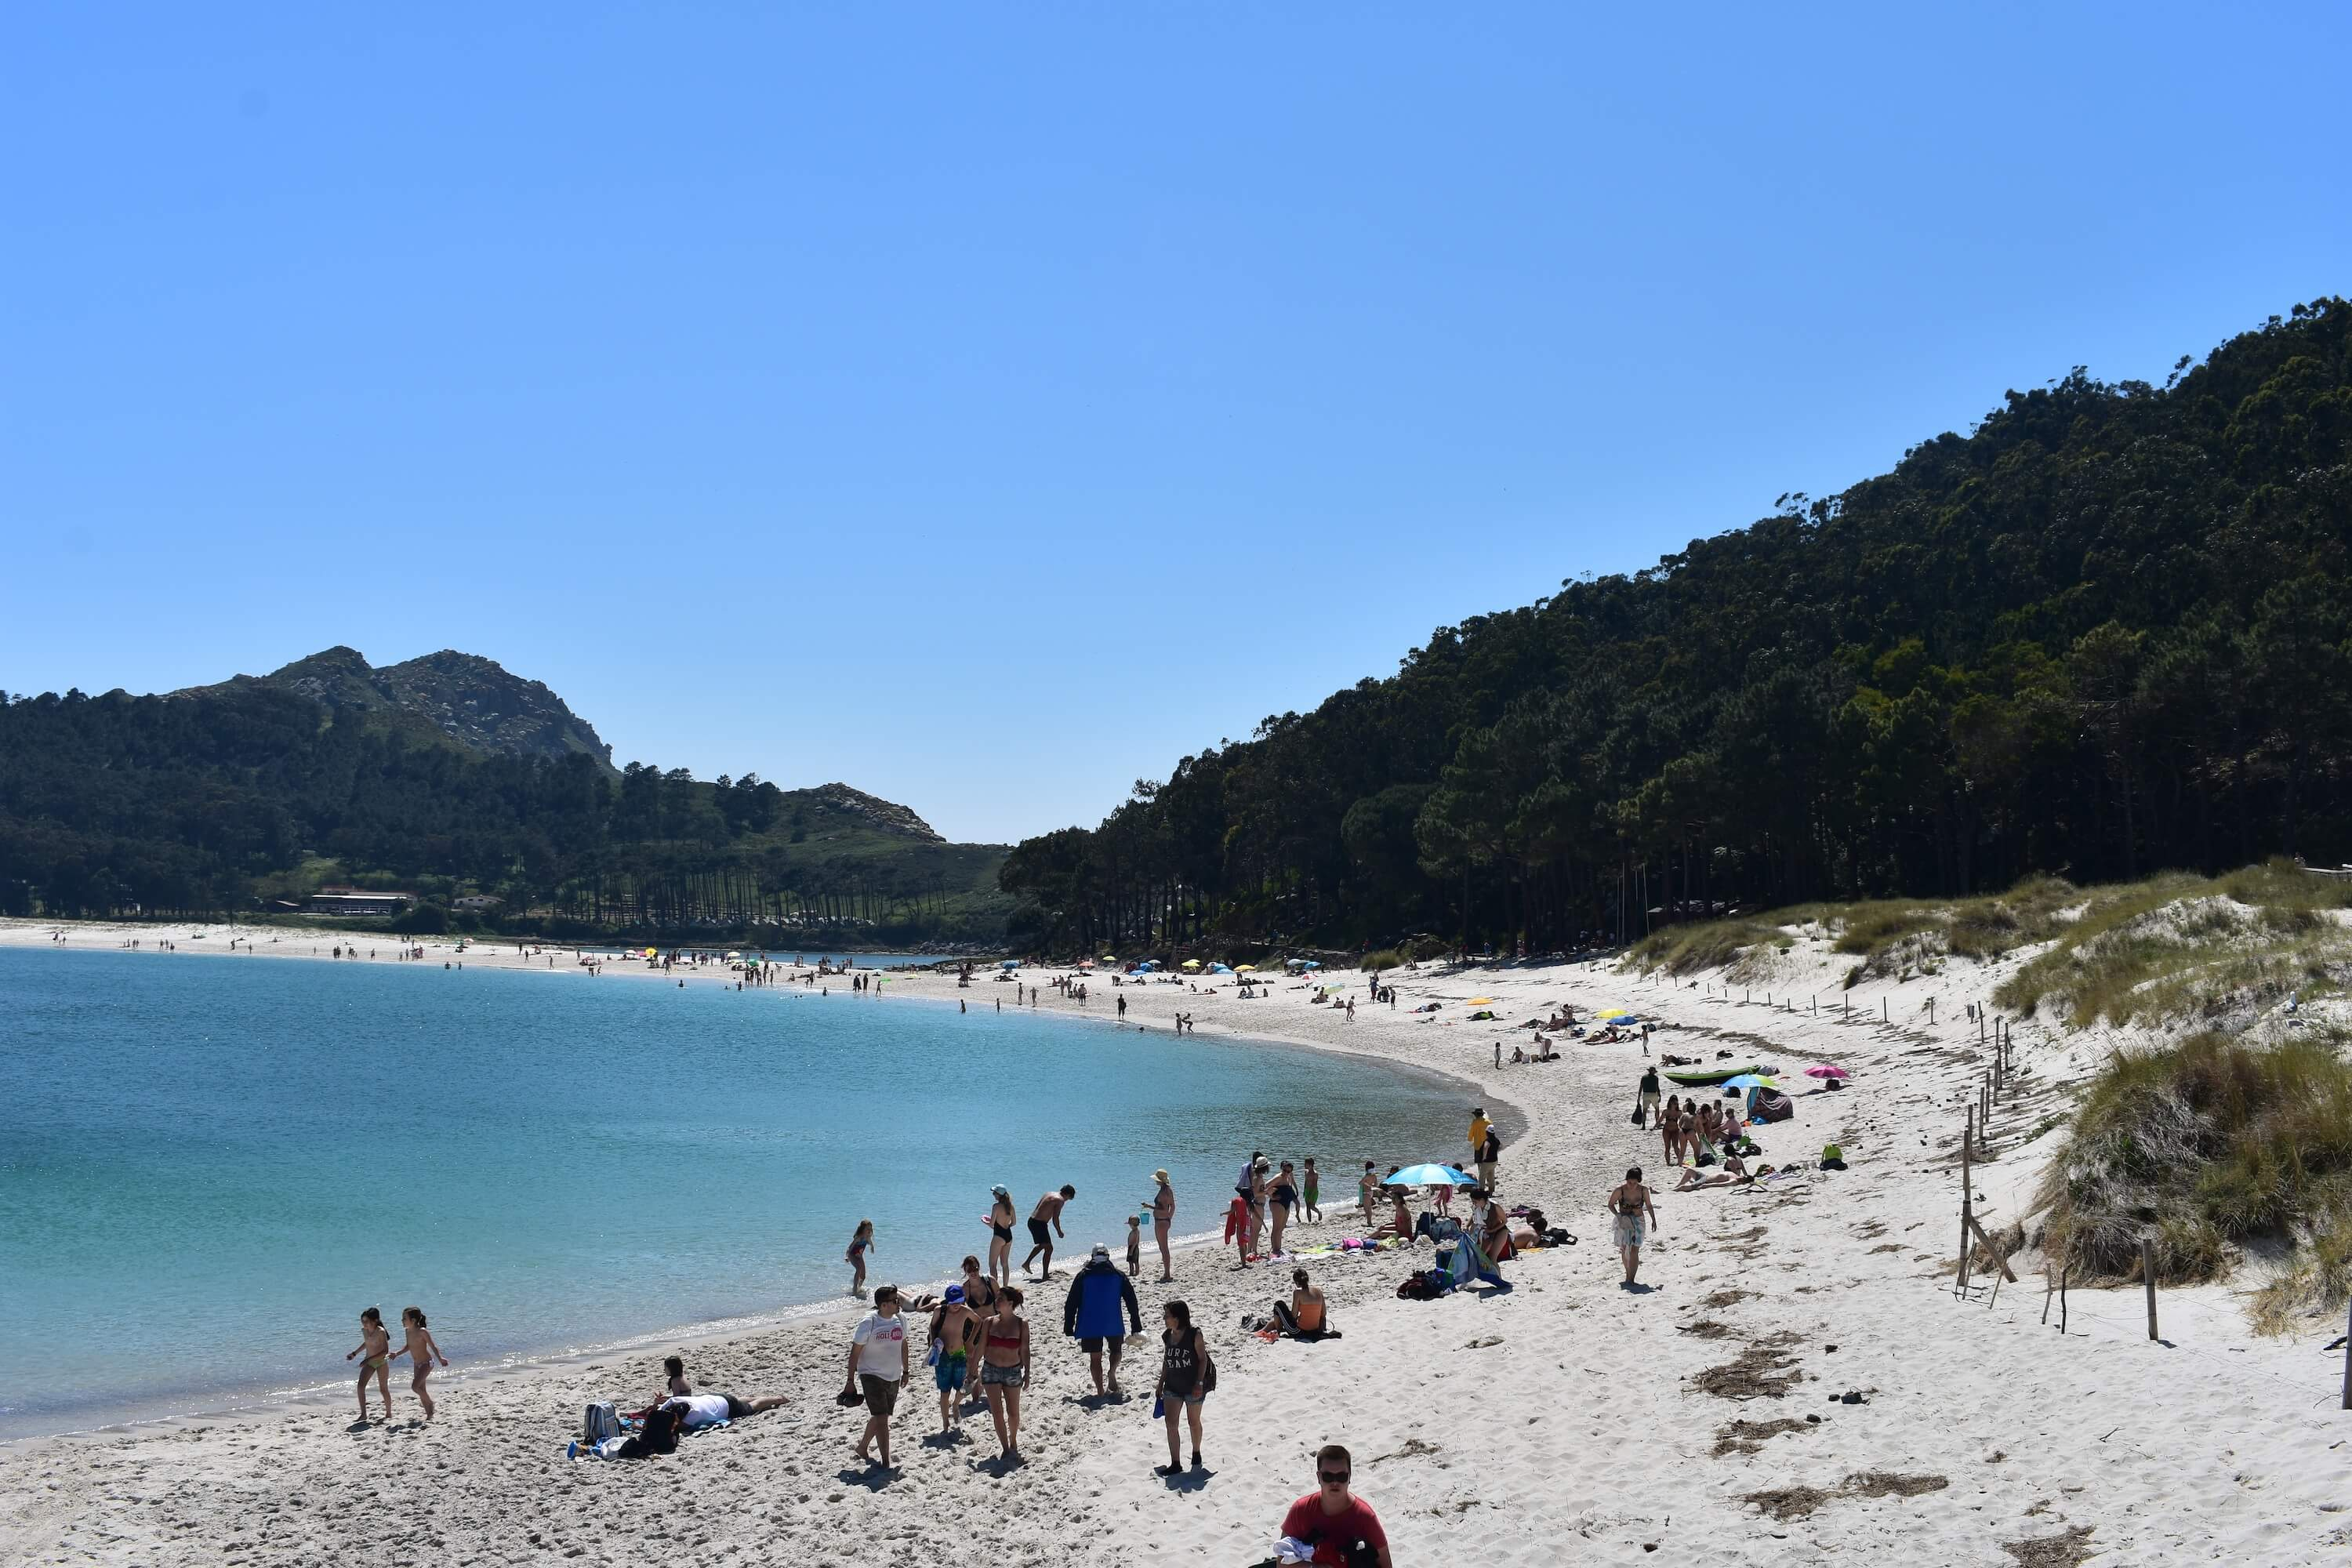 15 Photos to Inspire You to Visit the Cies Islands - Galicia Spain Travel Rodas Beach